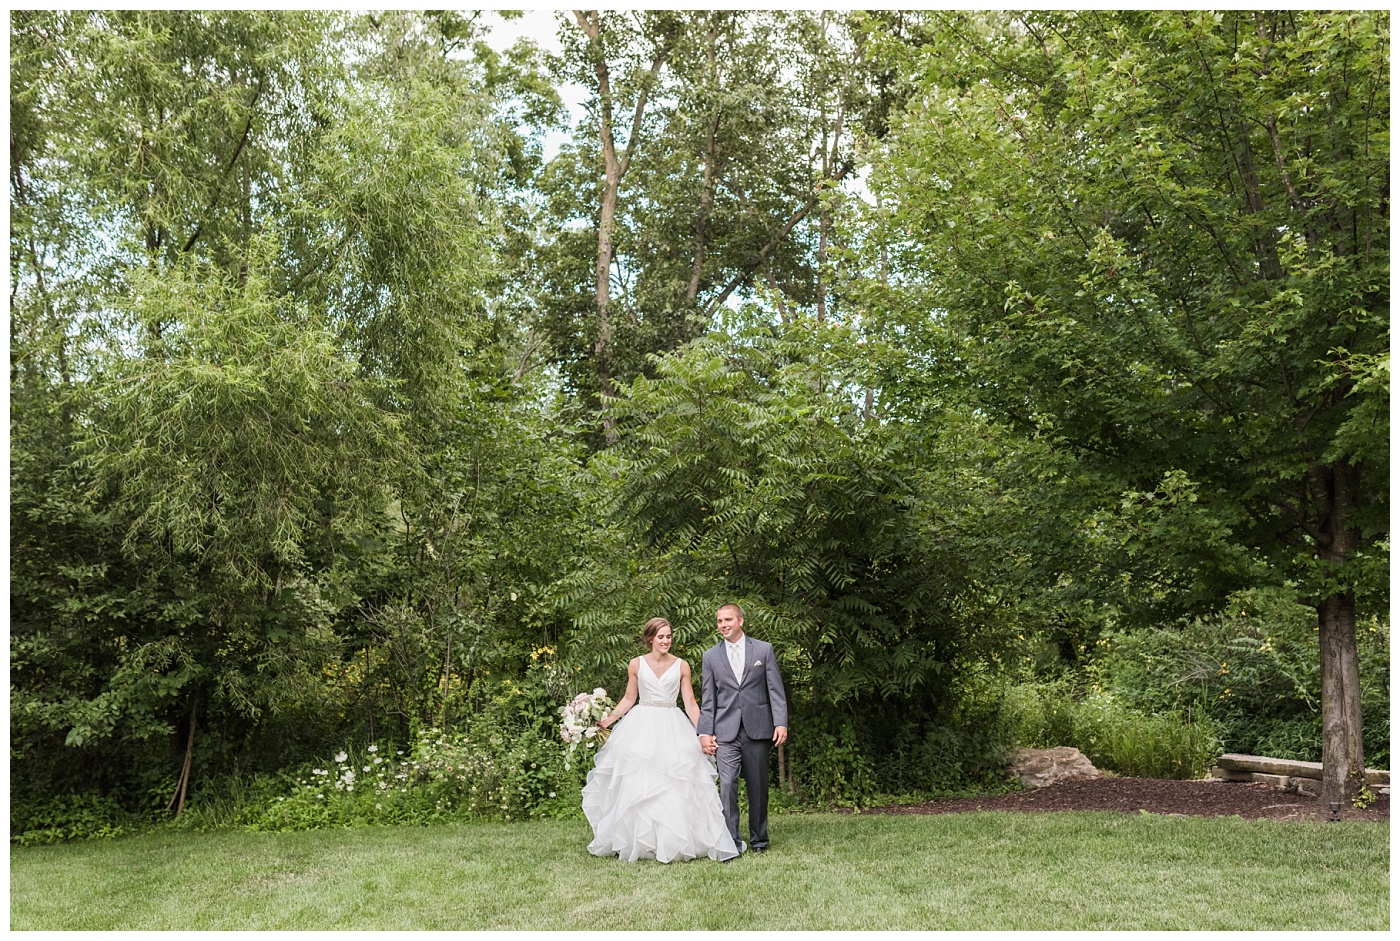 Stephanie Marie Photography Newman Catholic Center Ceremony Bella Sala Reception Tiffin Iowa City Wedding Photographer Chelsey Justin Meyers_0046-1.jpg